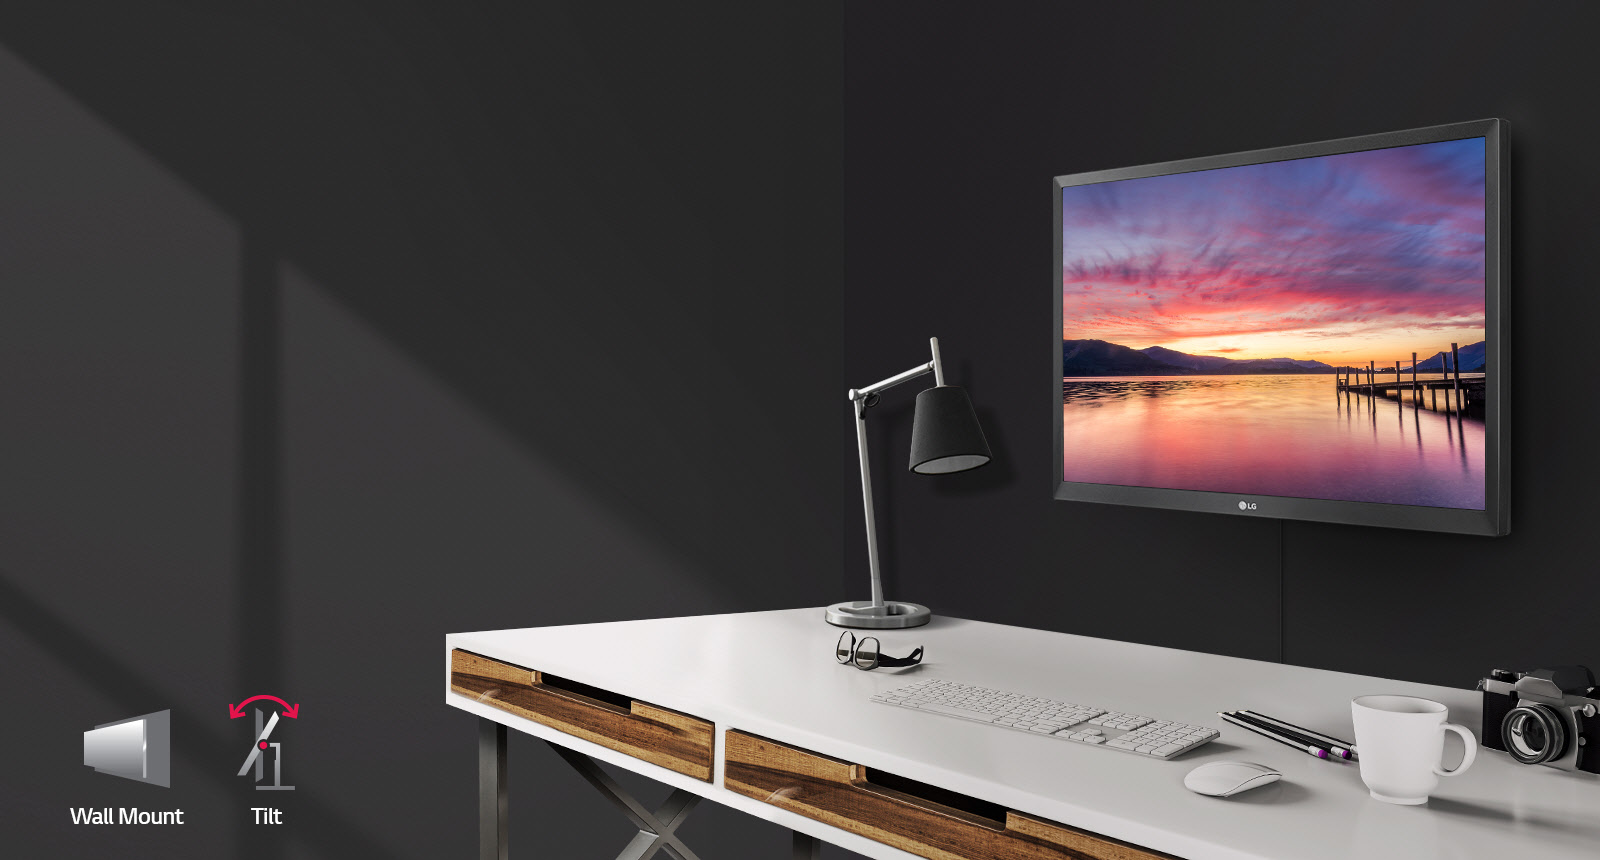 wall-mounted monitor above a desk workspace